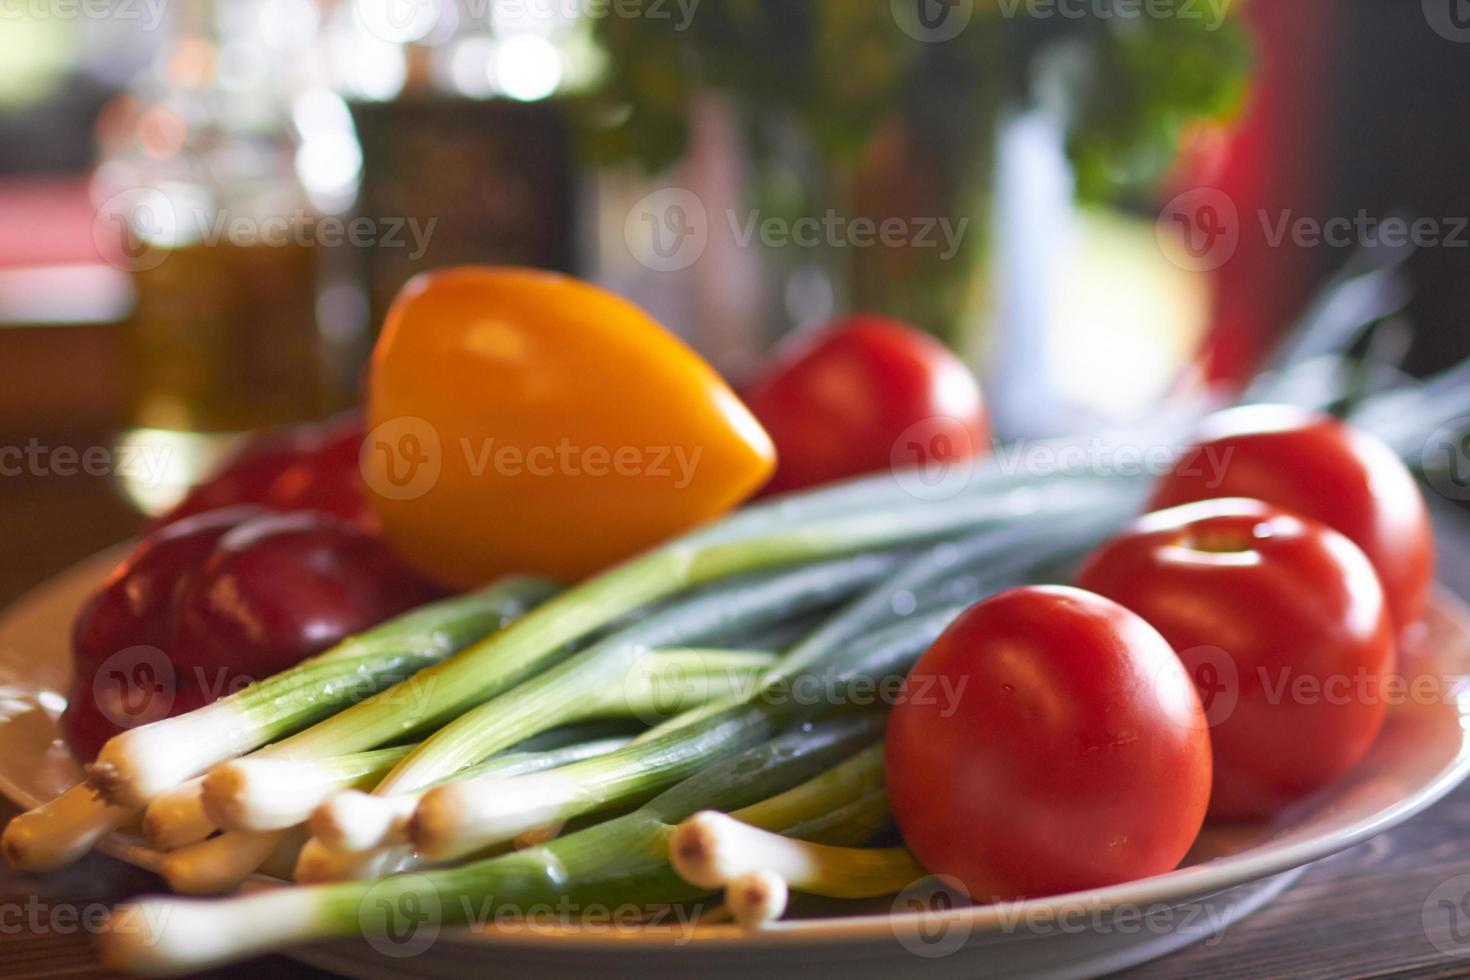 vegetables on a plate photo